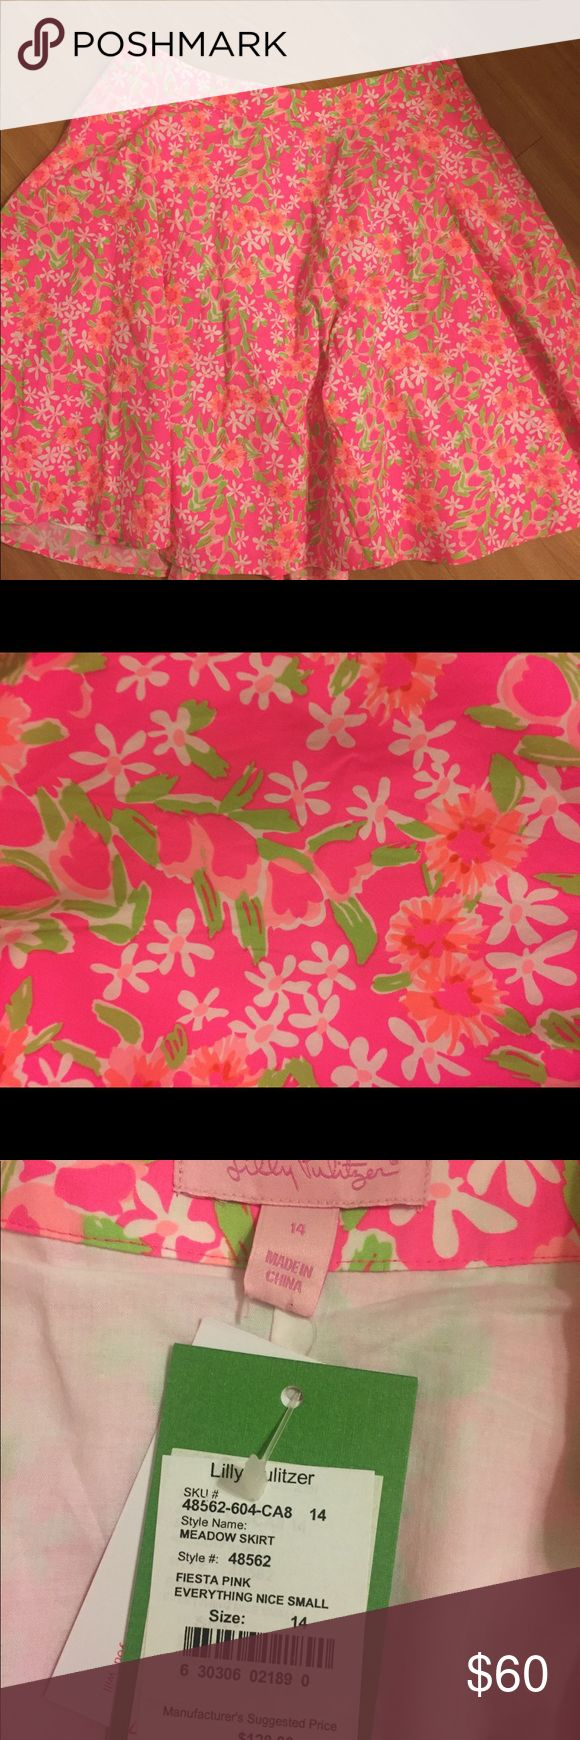 """NWT Lilly Pulitzer Neon Fiesta Skirt NWT! Beautiful neon Lilly skirt perfect for summer! A fun skirt to brighten any outfit. Measures 22"""" waist to hem. Lilly Pulitzer Skirts"""